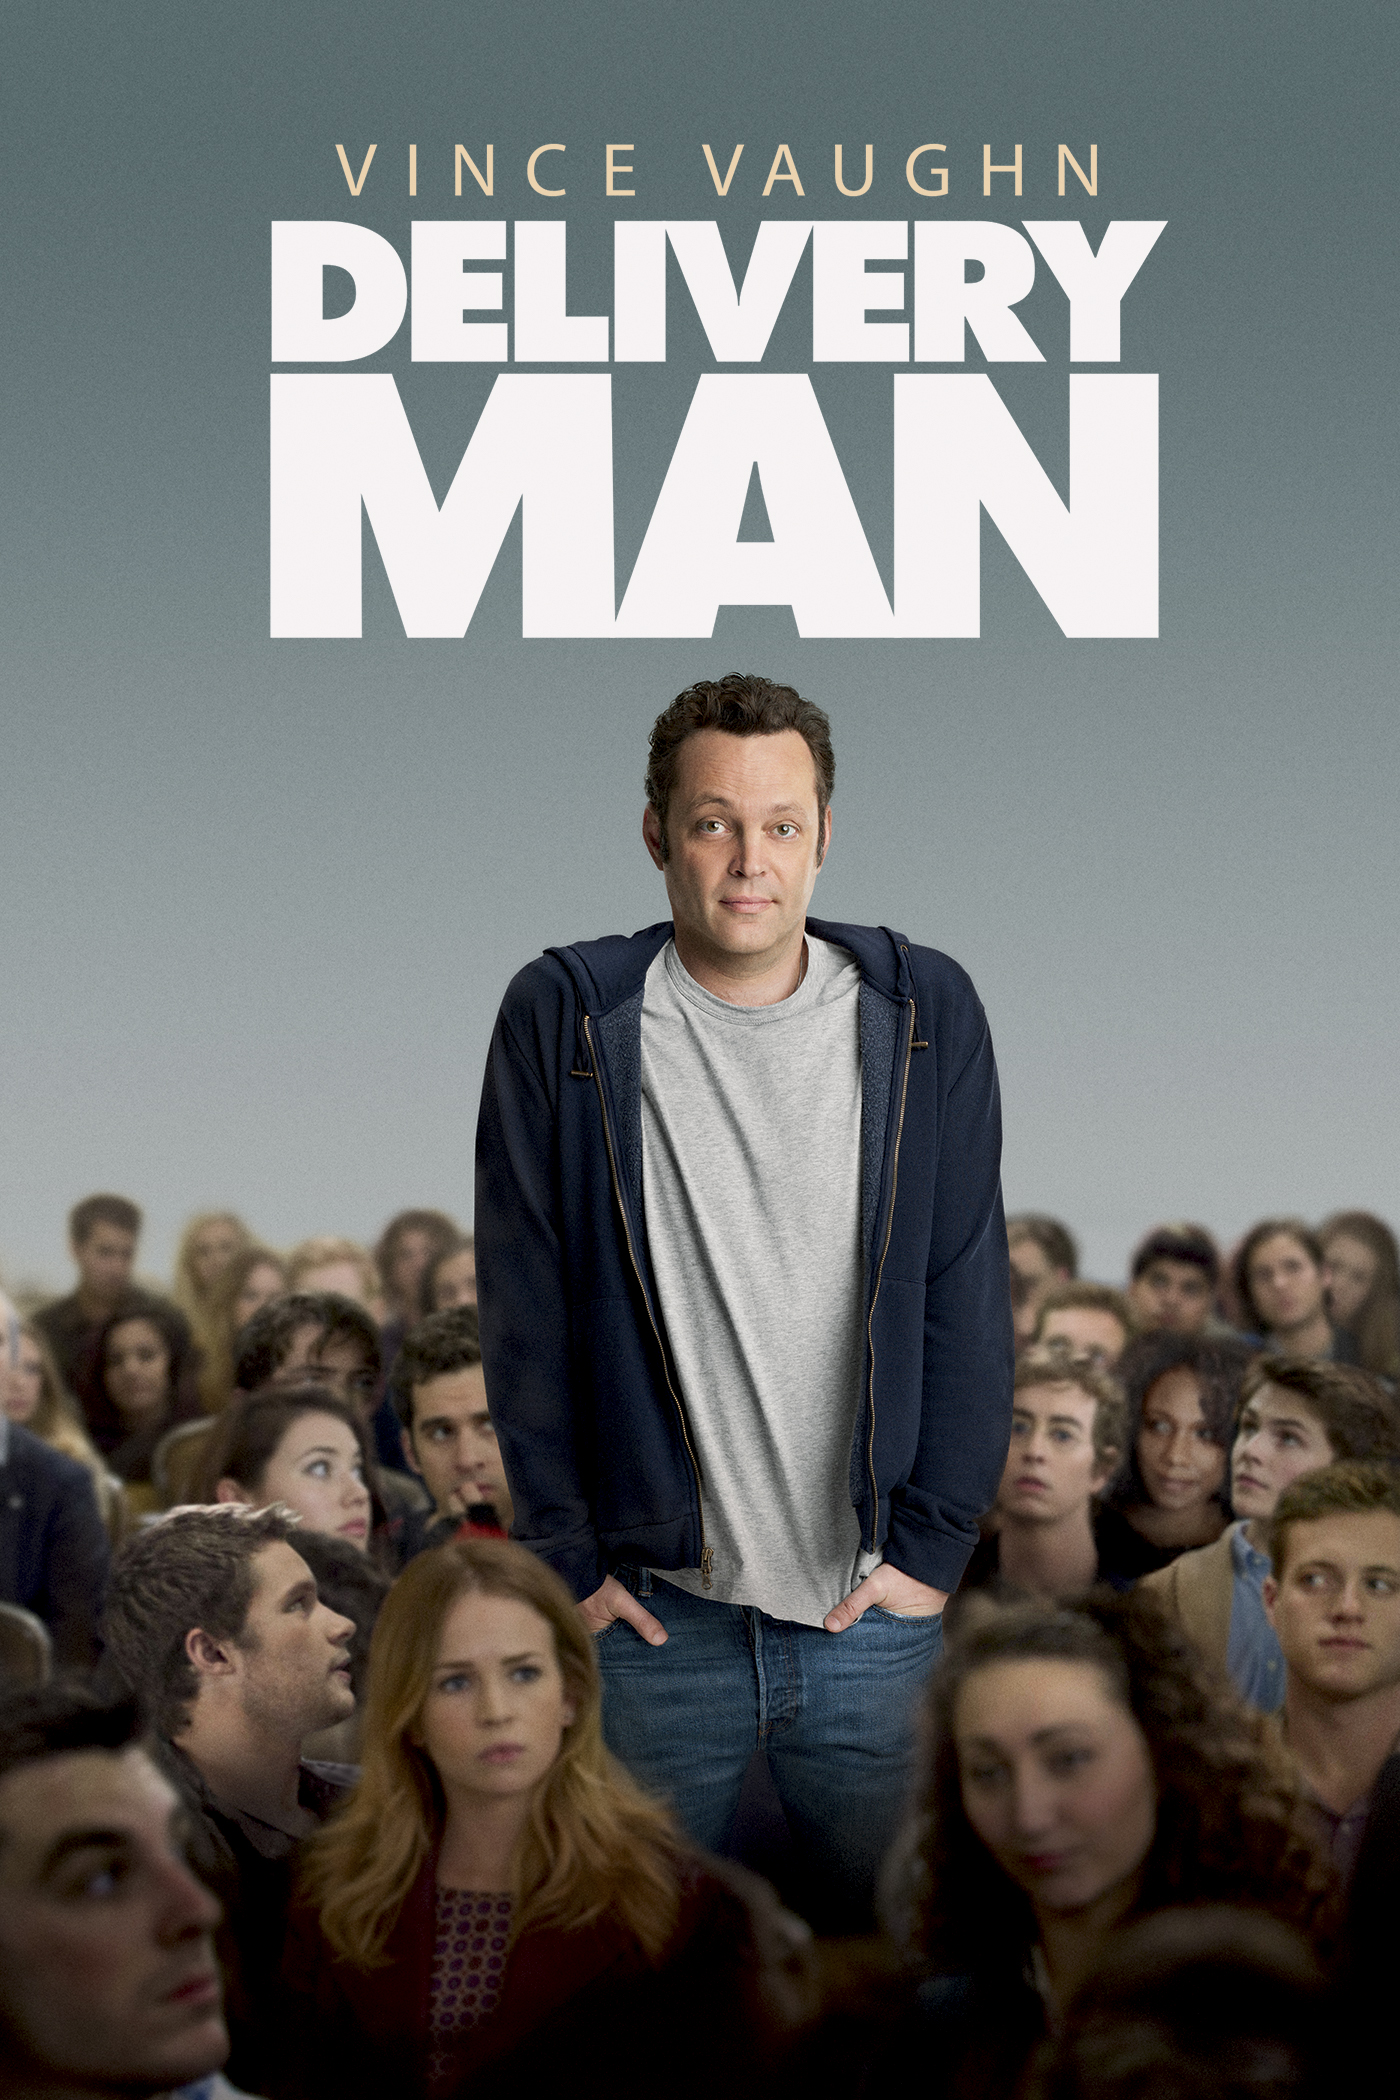 Delivery Man Blu-Ray DVD Review: A Heartwarming Comedy of Self-Discovery.